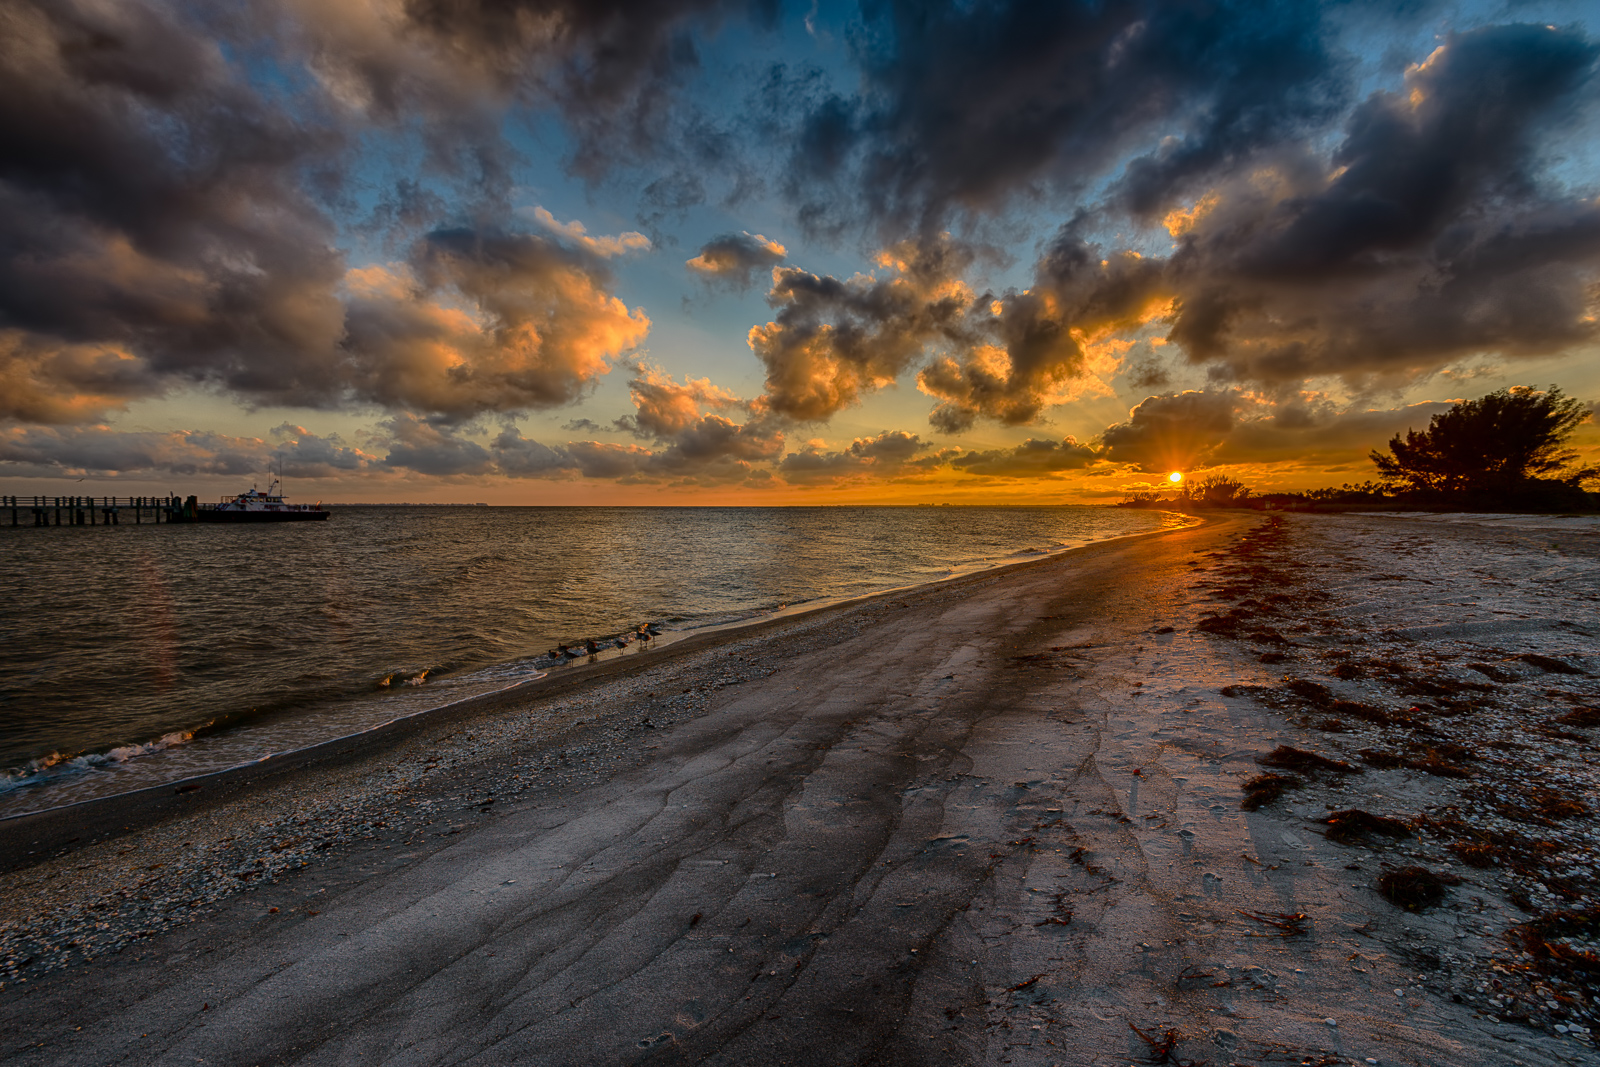 The end of the day at Fort De Soto